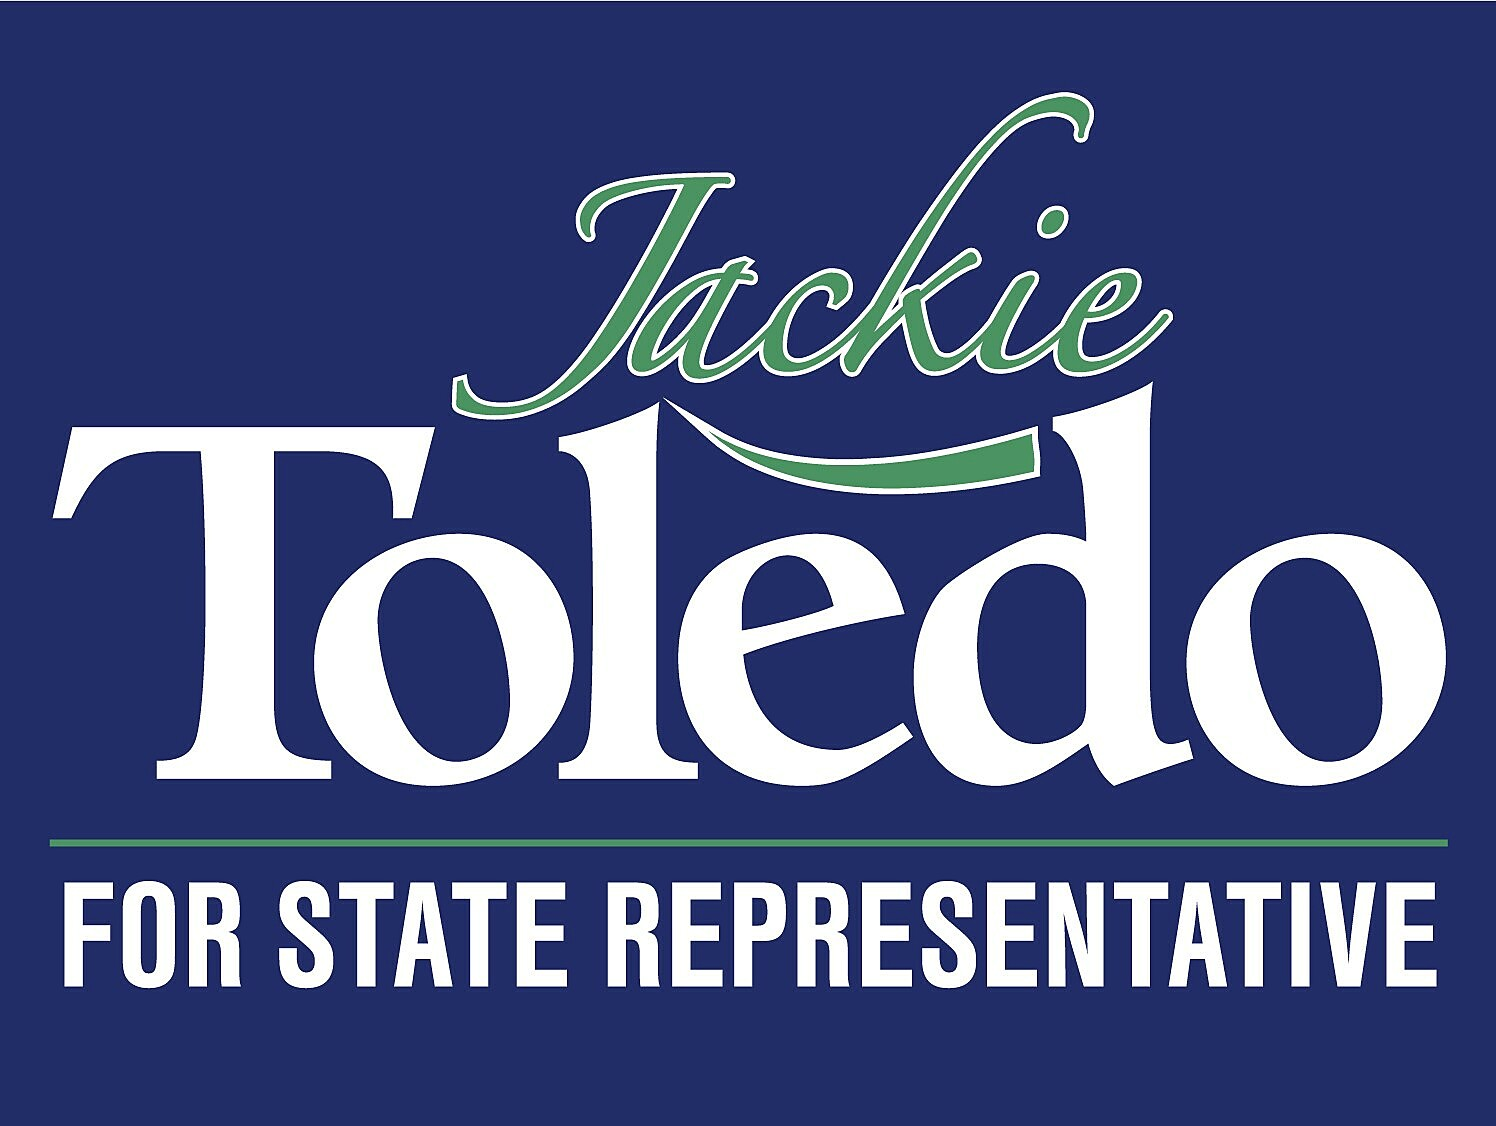 Jackie Toledo Campaign: Jackie Toledo for State House